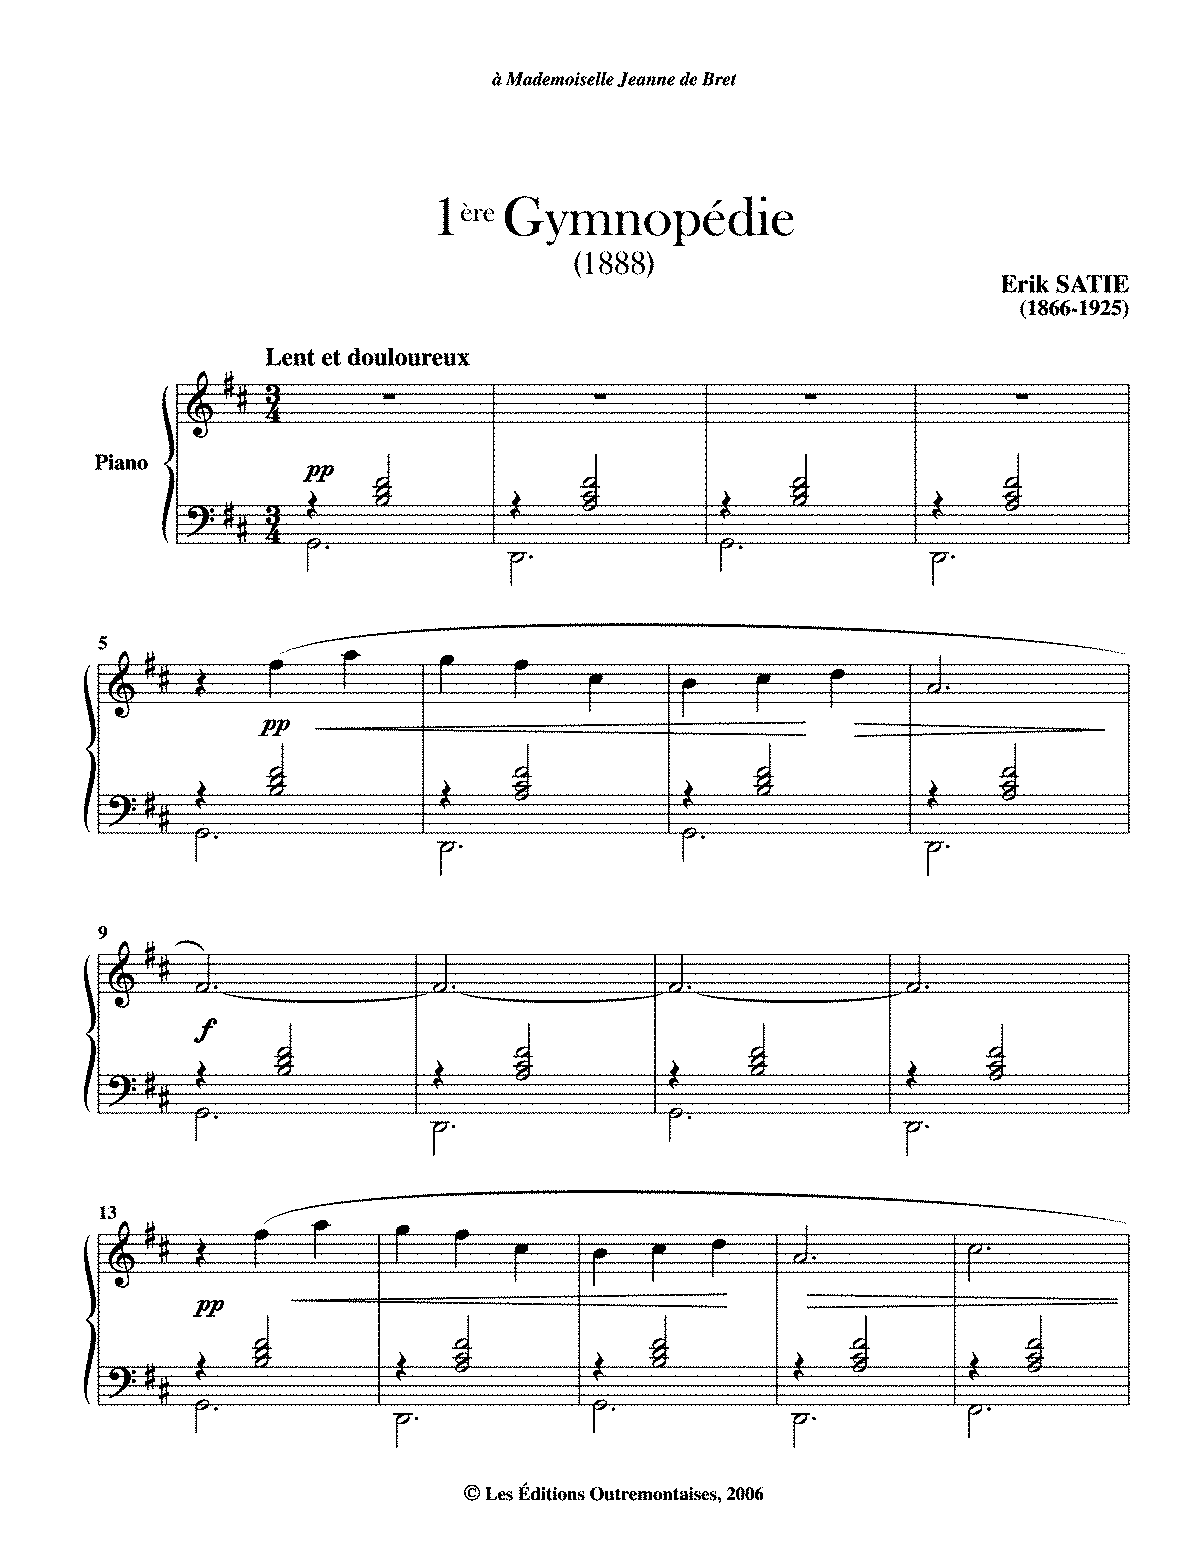 Satie Gymnopedies.pdf